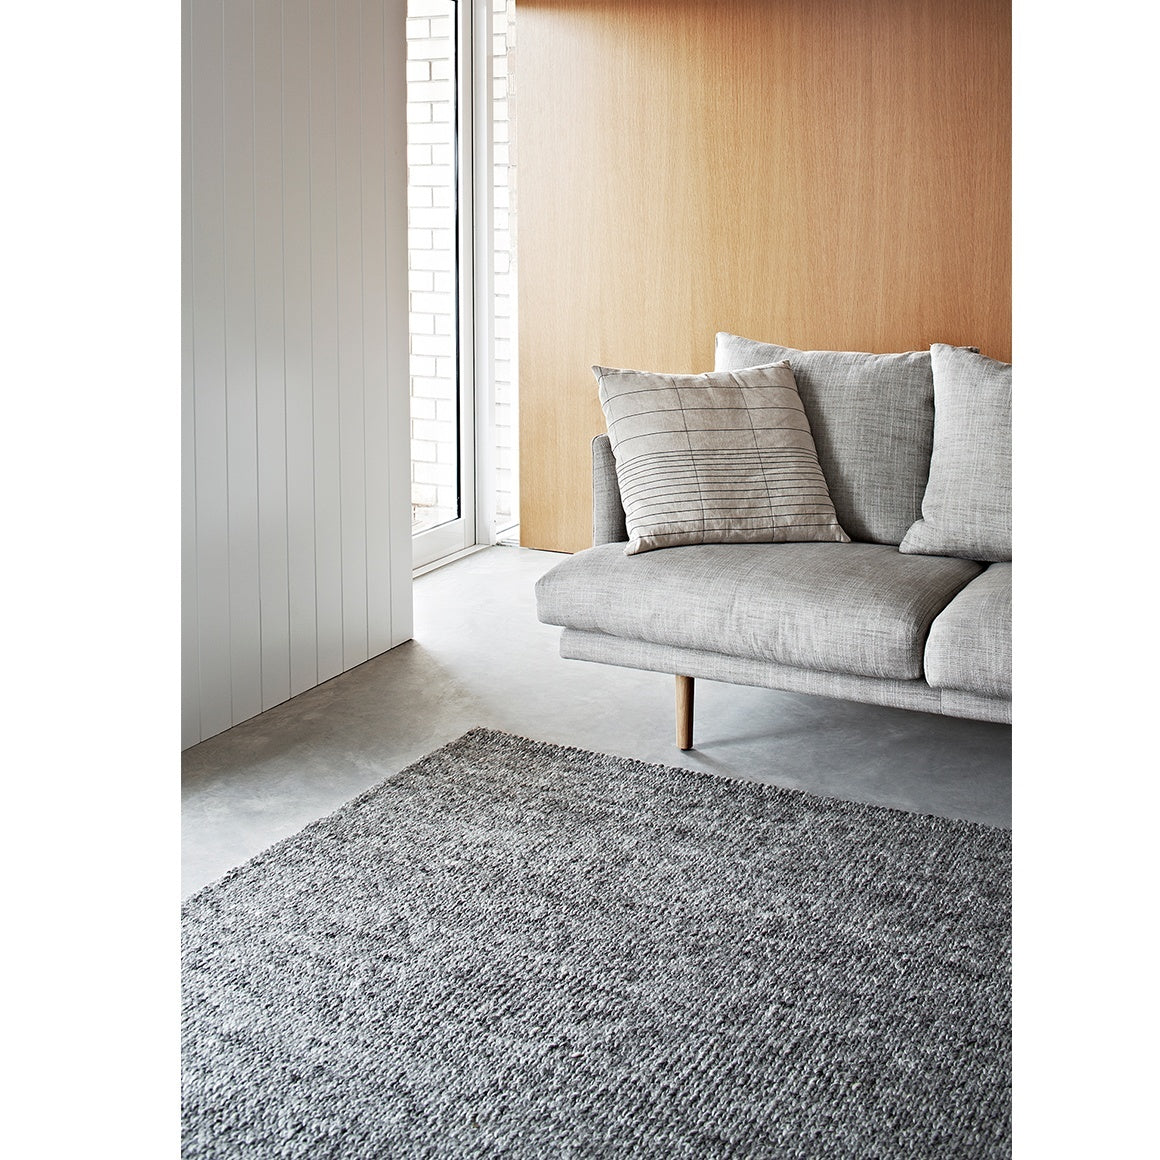 ARMADILLO SIERRA WEAVE RUG - Eclectic Cool  - 4